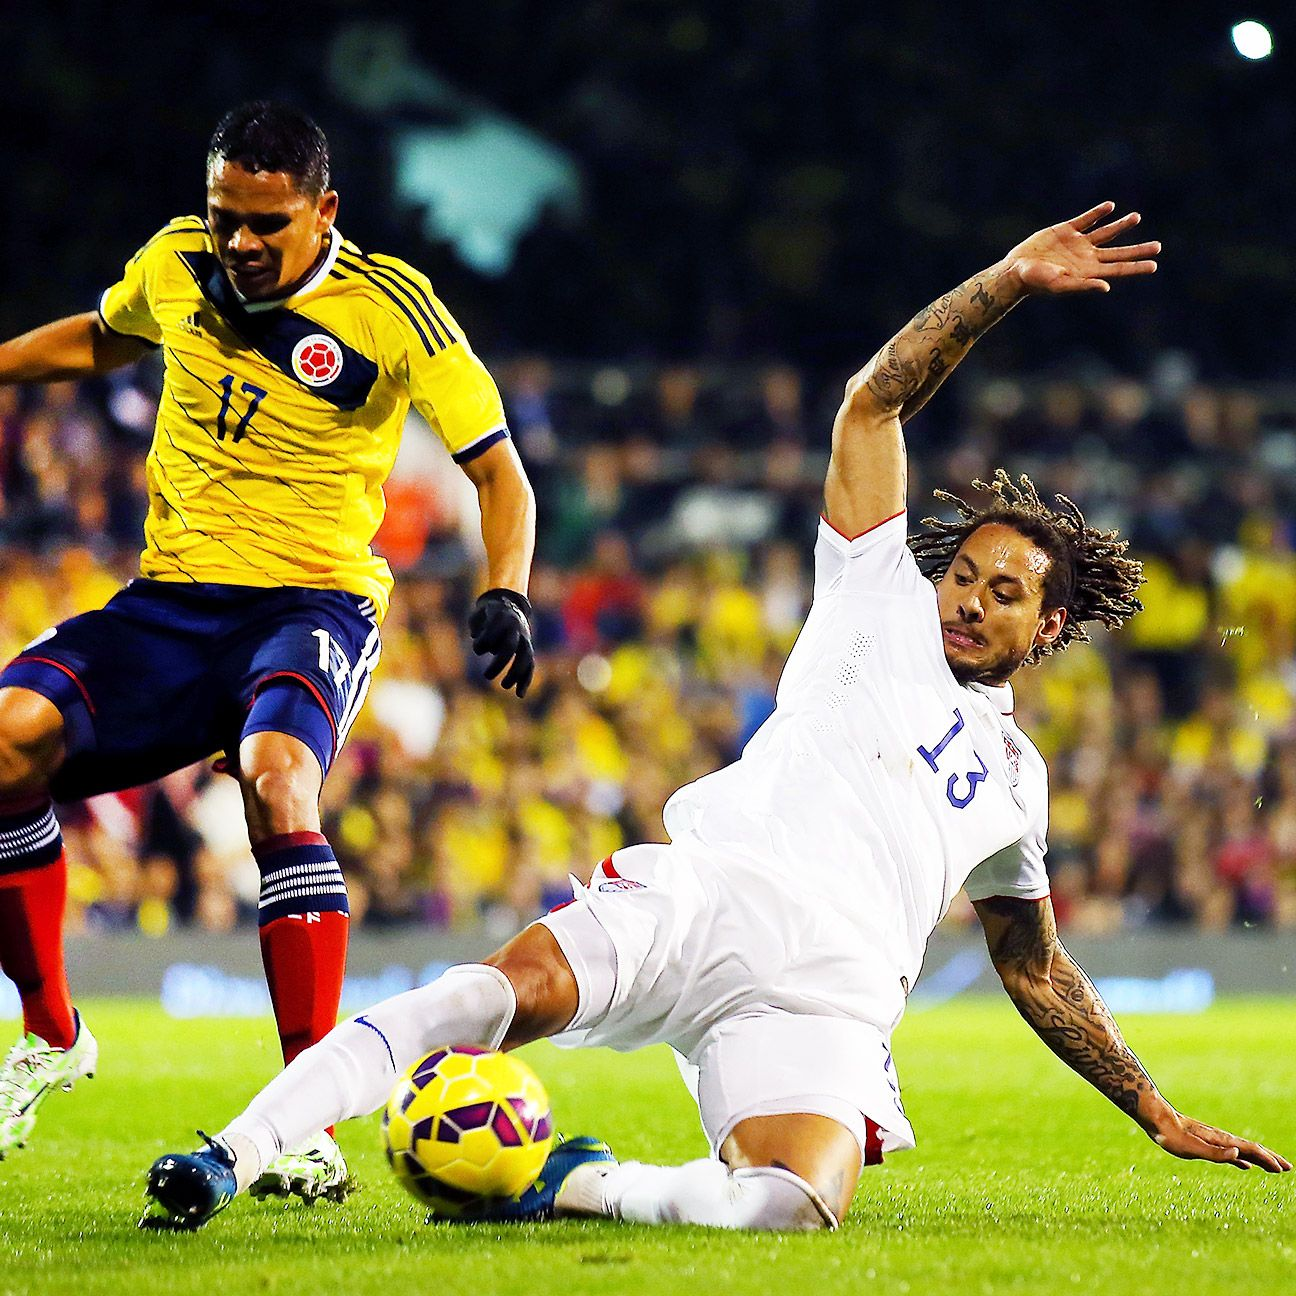 Jermaine Jones put in another solid performance at center back for the U.S.